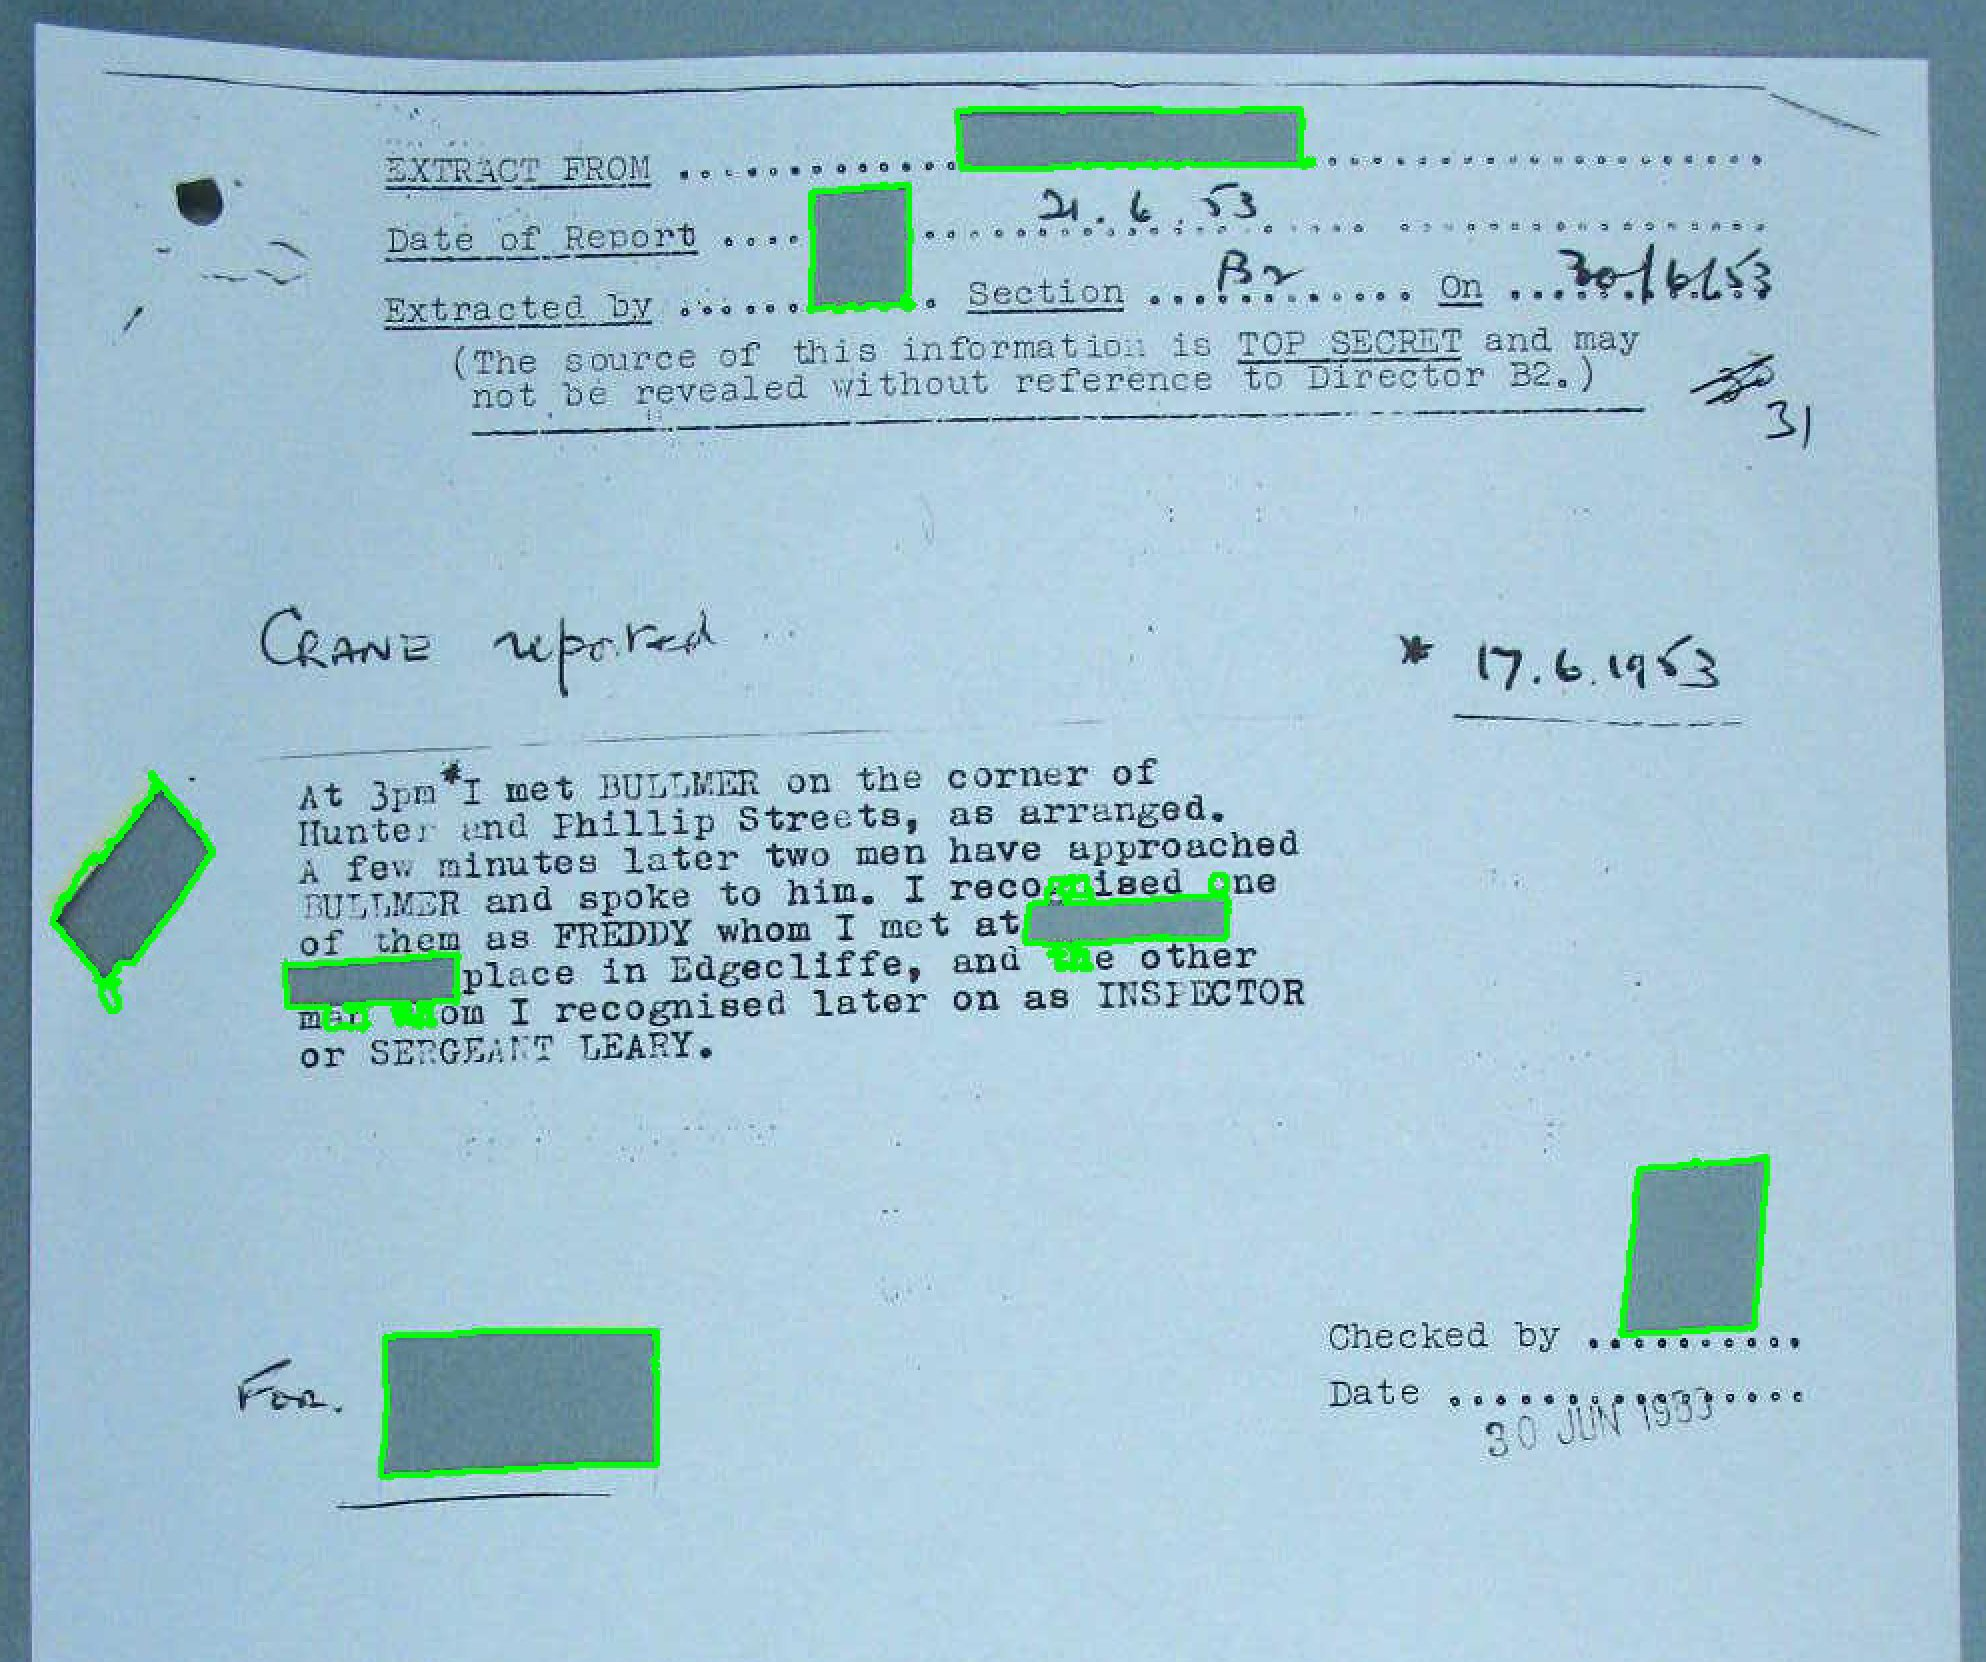 Some redactions in @naagovau ASIO files are cut out of the page instead of blacked out. Think I'm finding them now. https://t.co/3XGLaCTQkg